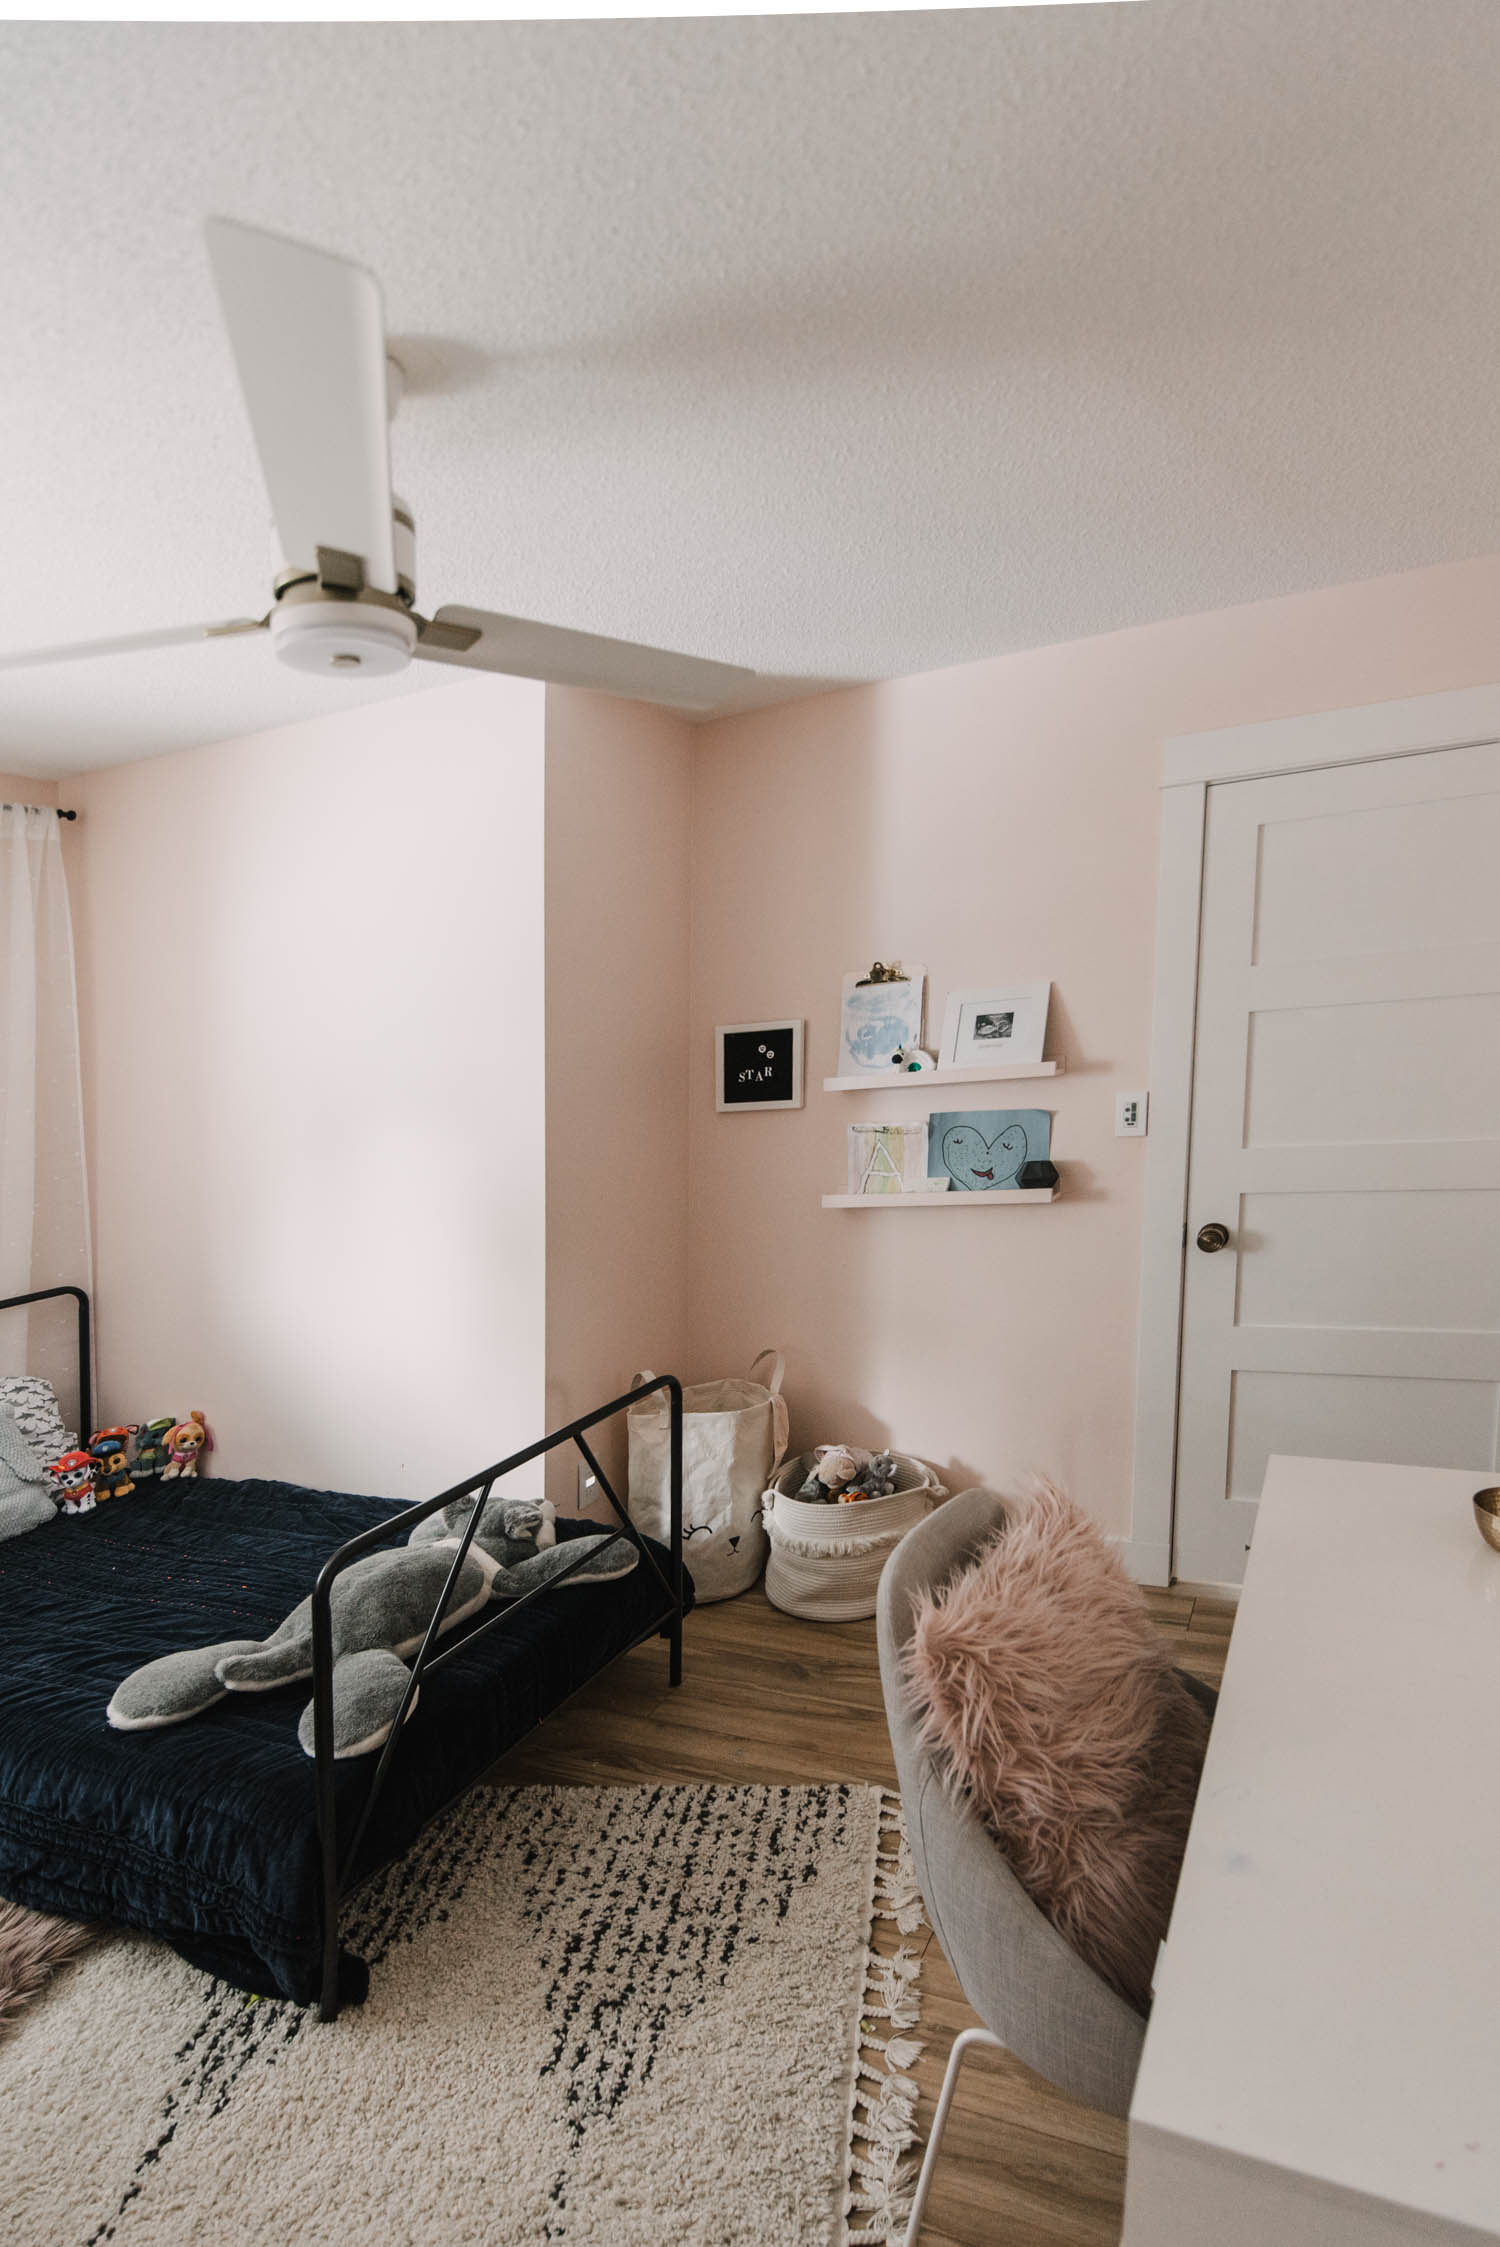 Shared kids bedrooms for big families in small homes